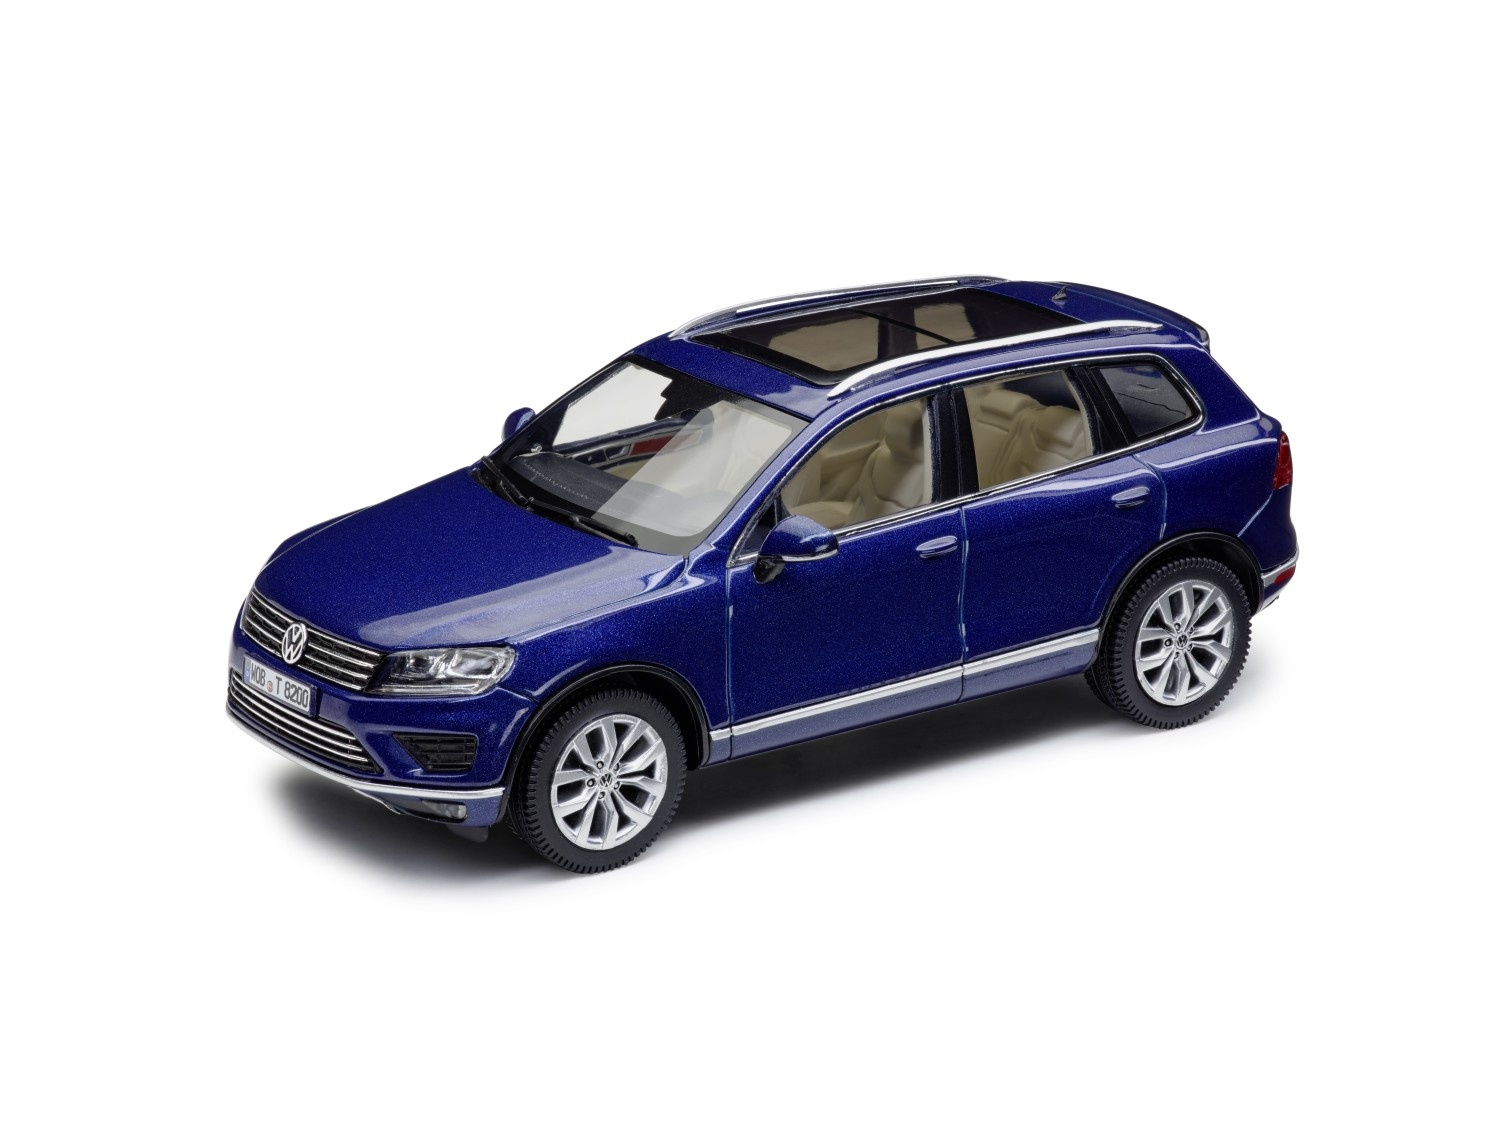 Touareg NF-GP, Reef Blue metalizado